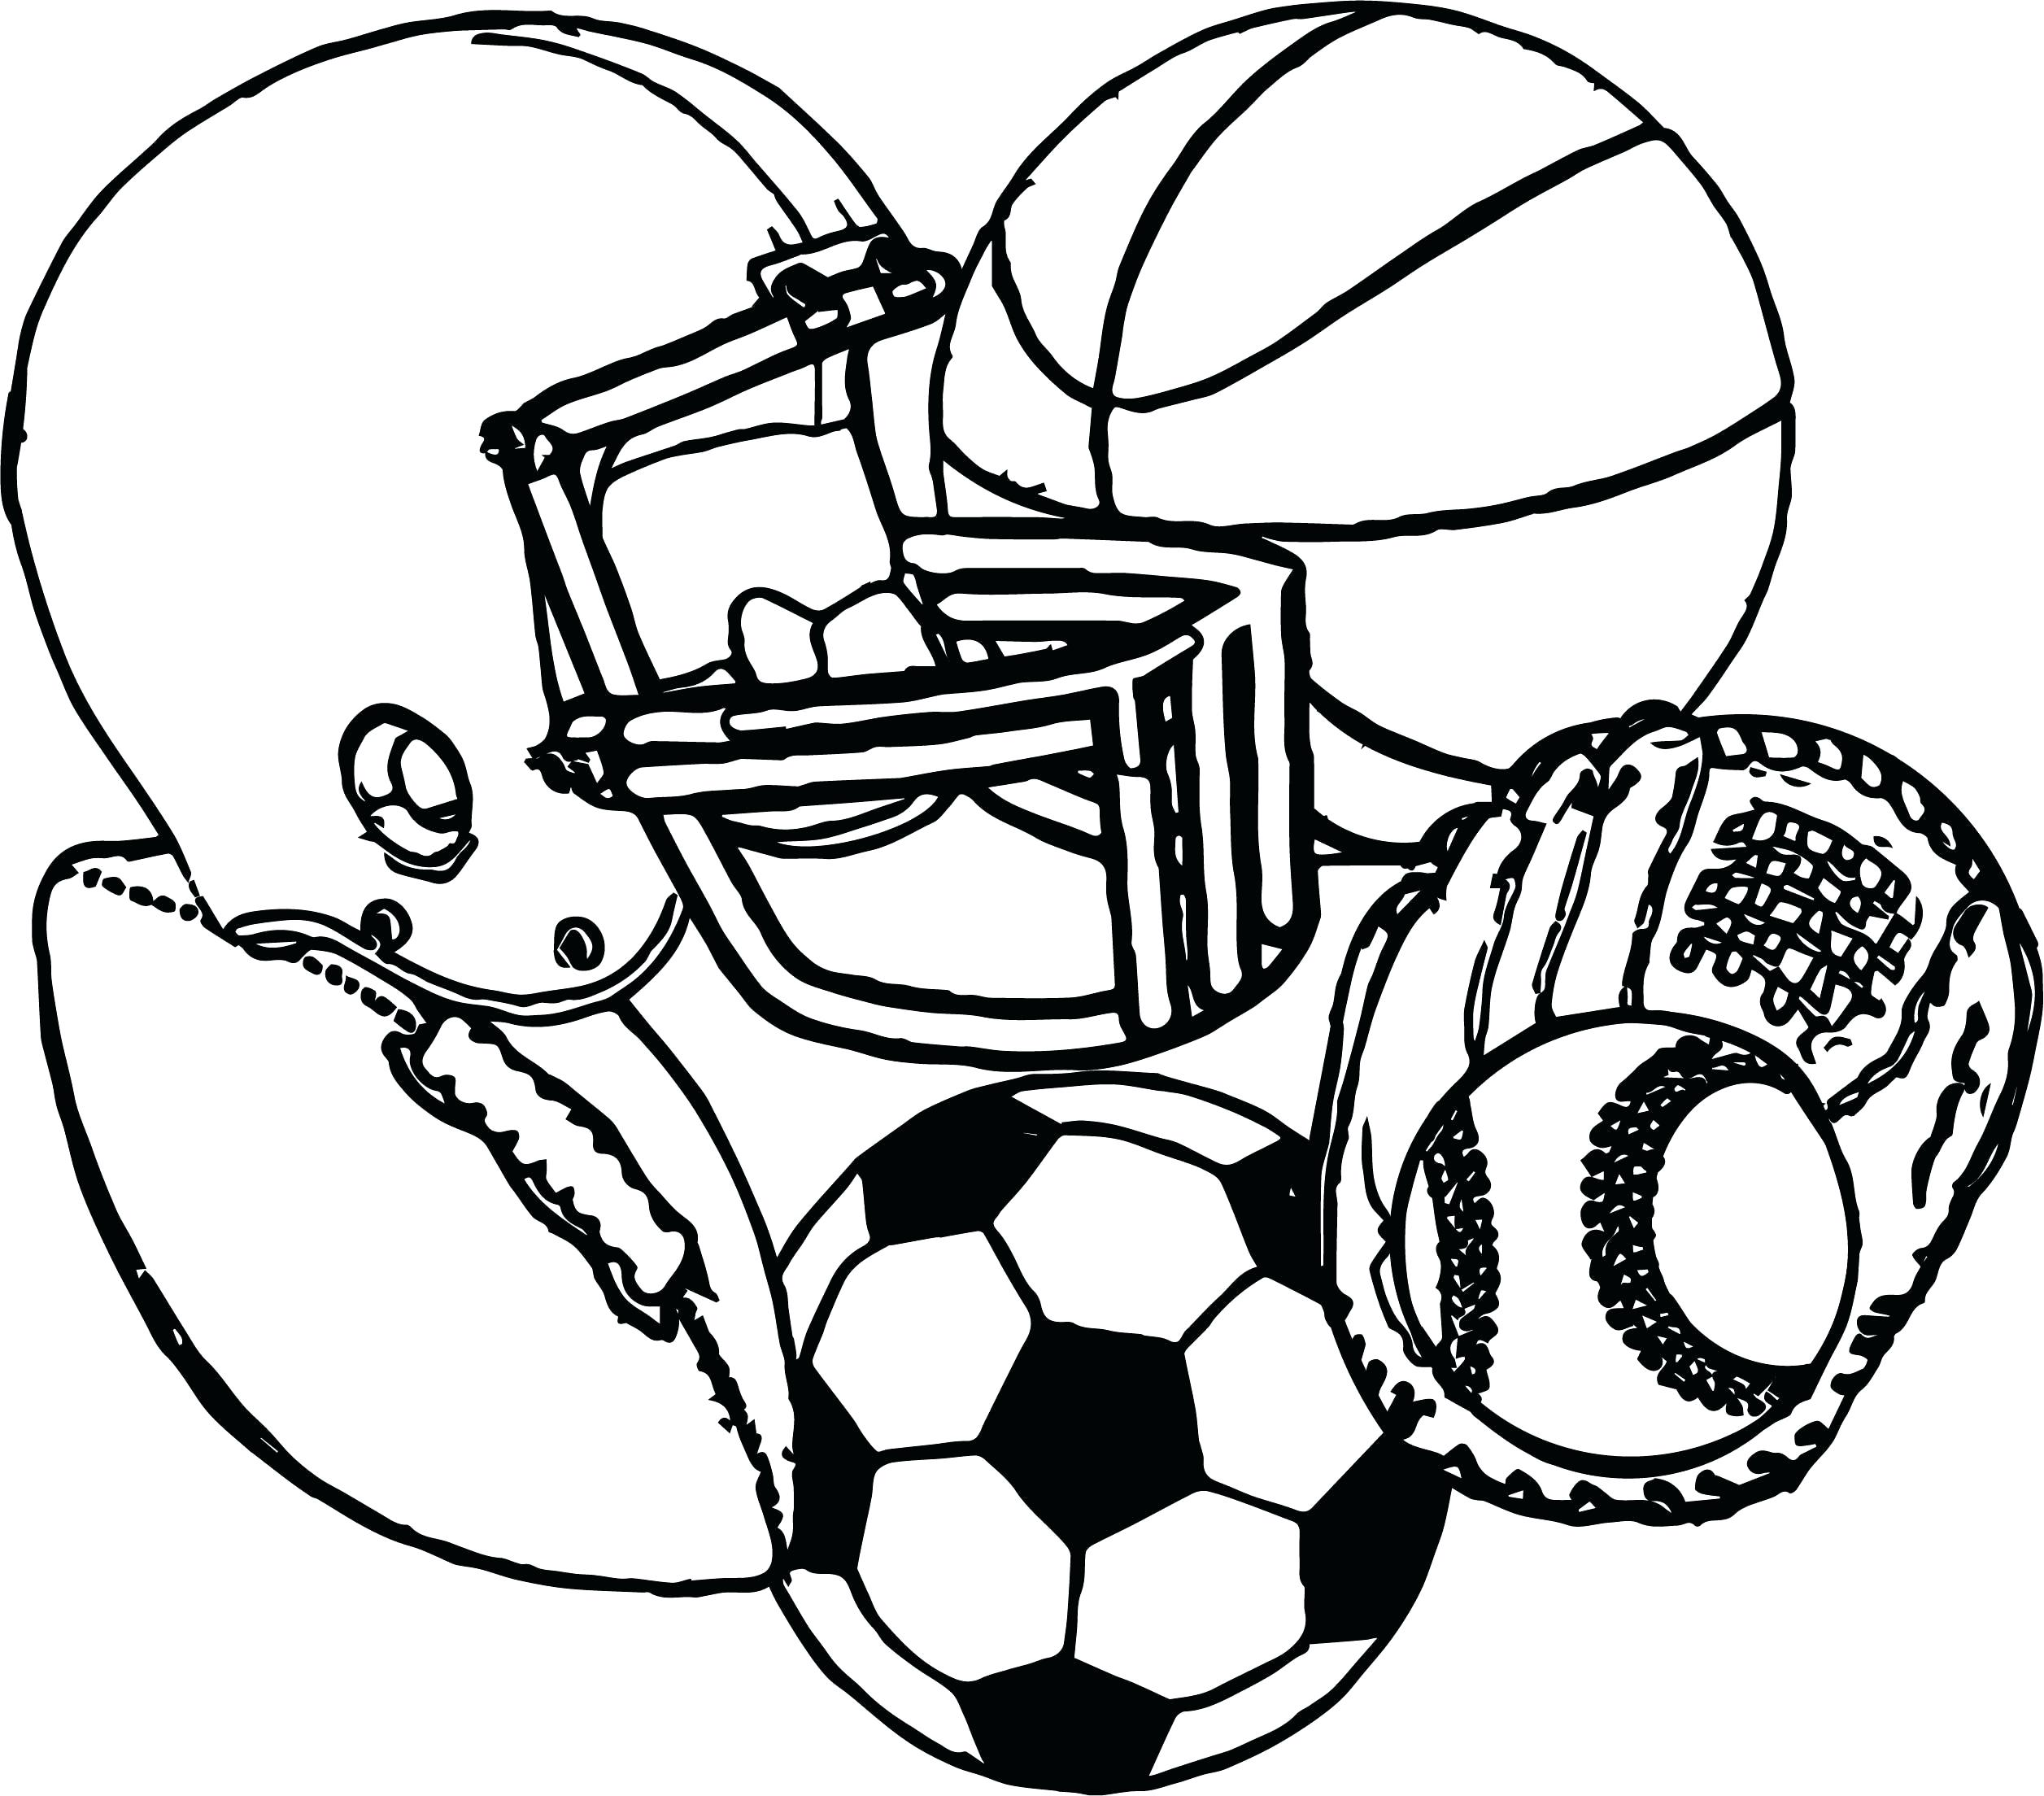 Soccerball Coloring Pages - Coloring Home